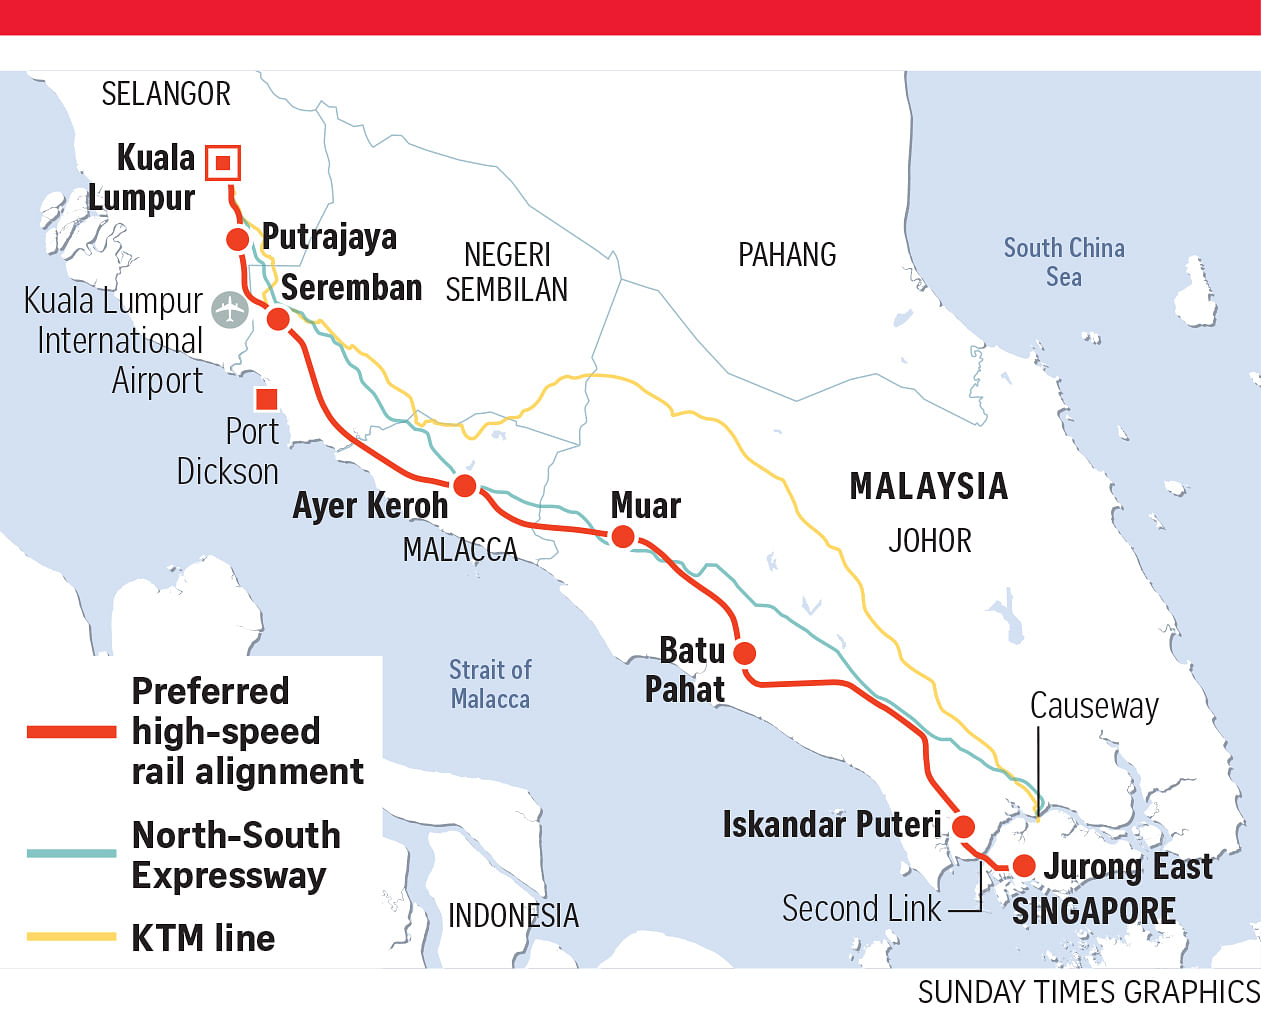 Singapore Kl High Speed Rail What To See Where Shop At Each Open Trip Kuala Lumpur Muar Ayer Keroh Seremban Putrajaya And Are In Malaysia With Location Offering Something Distinctive Travellers Searching For